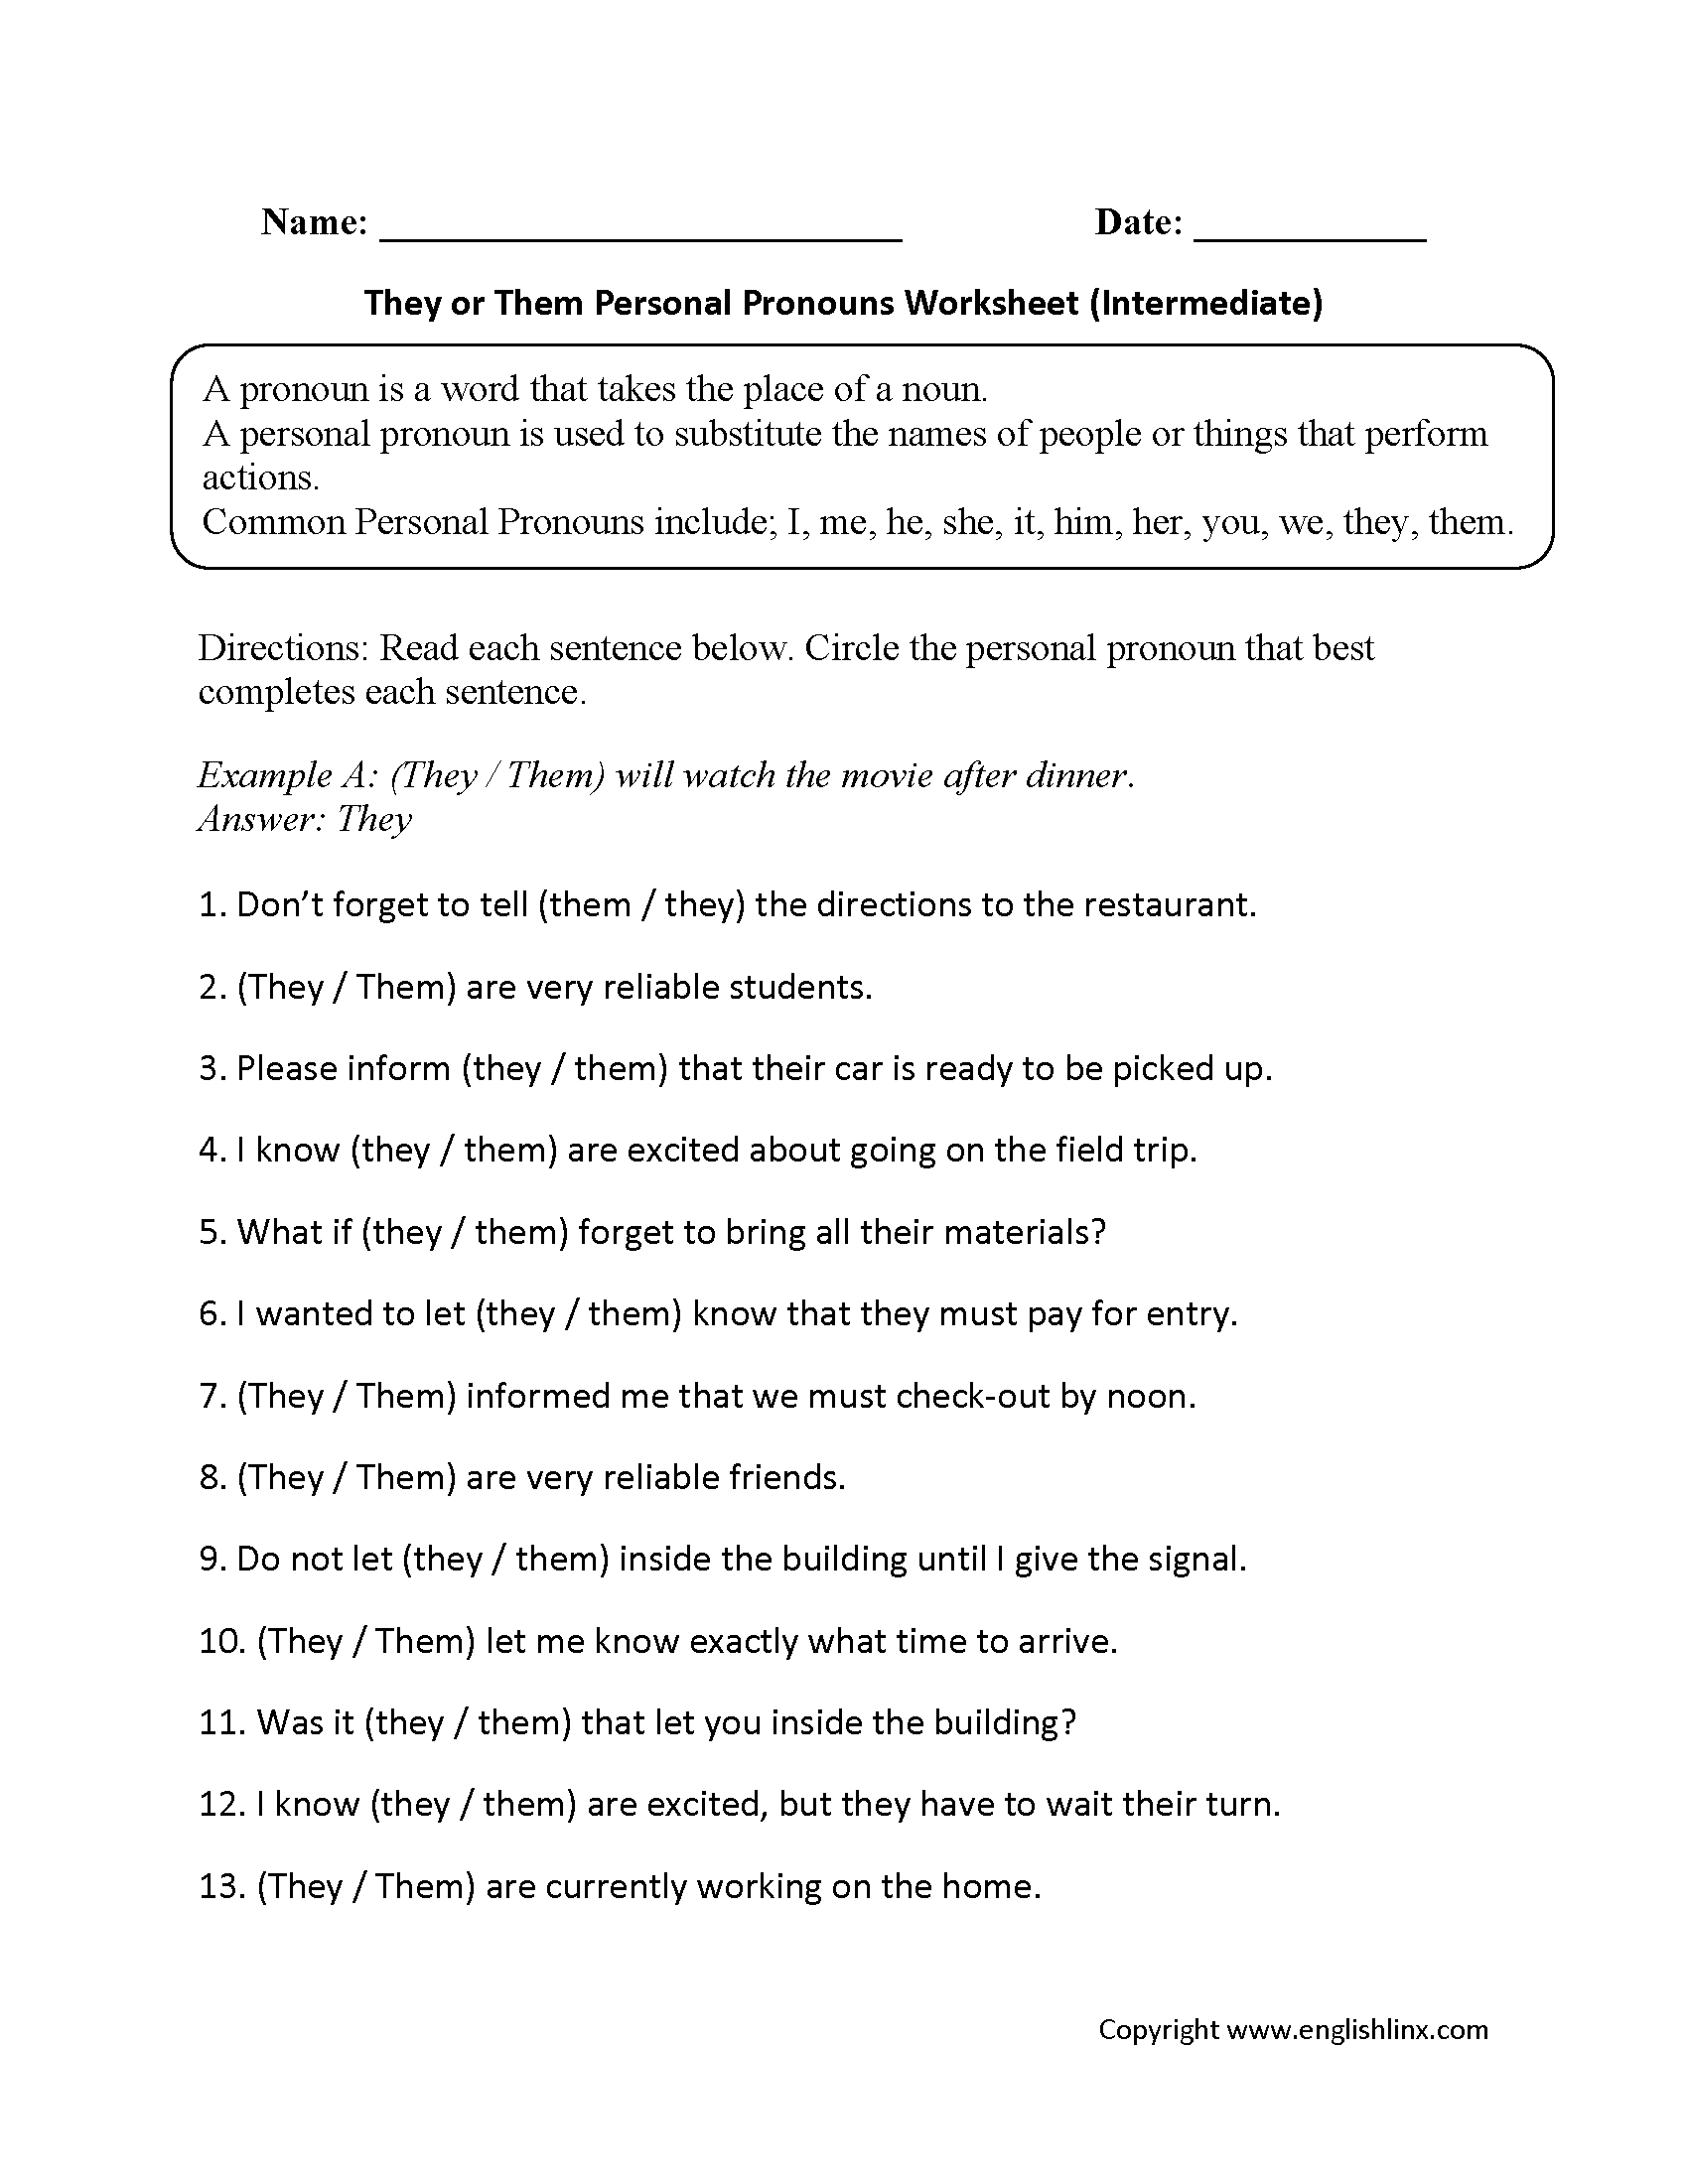 They Or Them Personal Pronouns Worksheets Intermediate